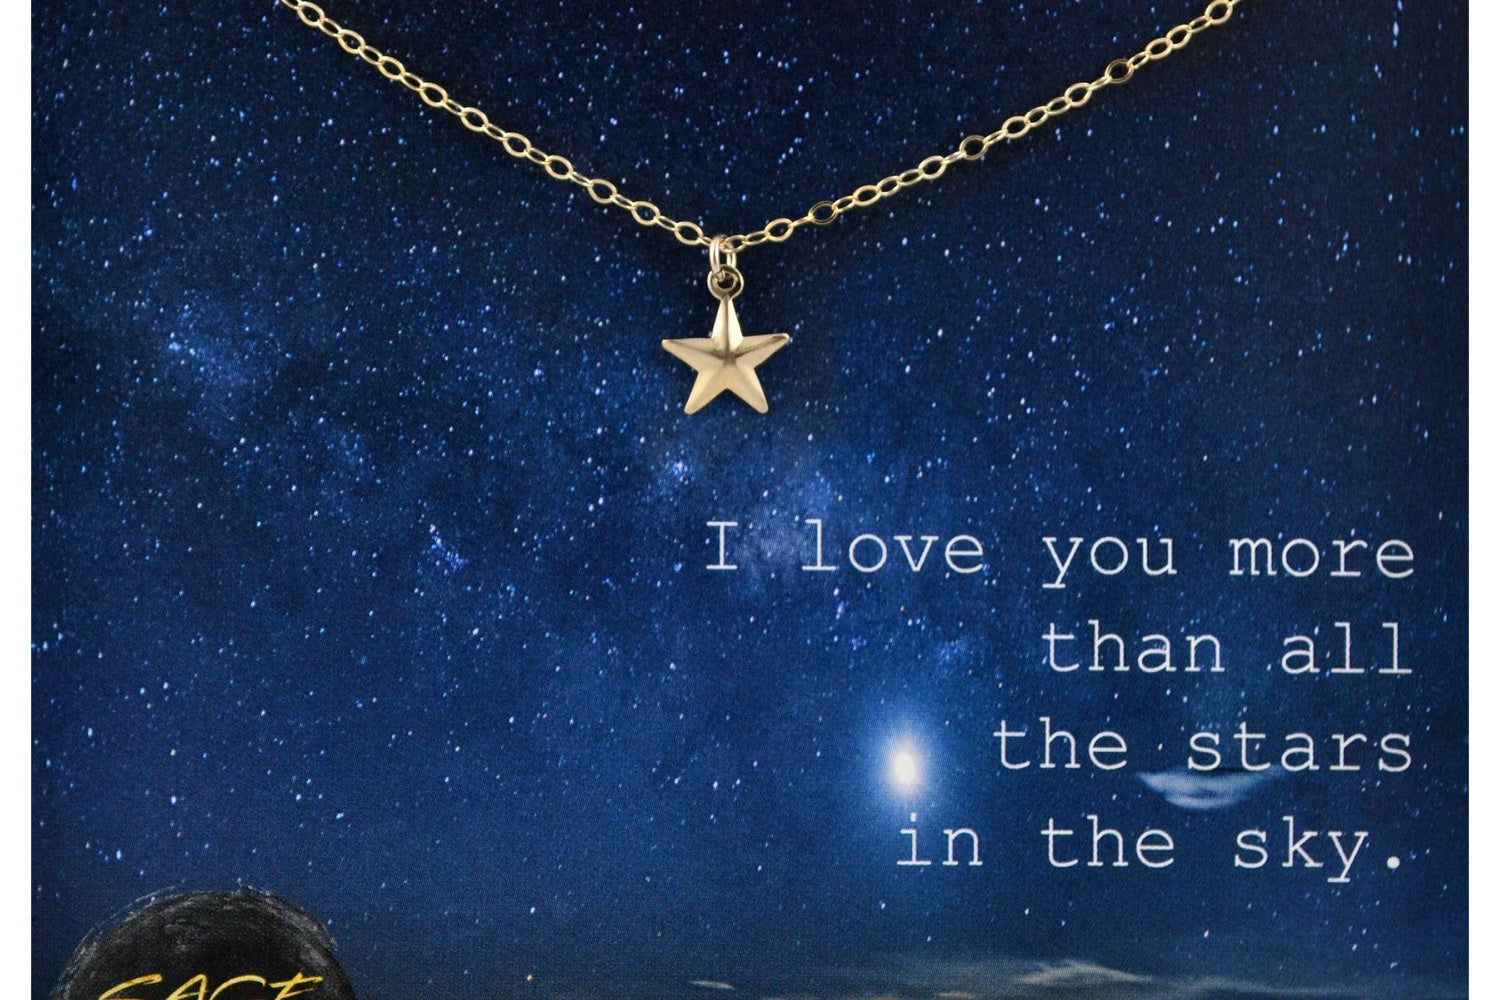 LOVE YOU MORE, Star Necklace - 14K Gold Filled-Sela+Sage